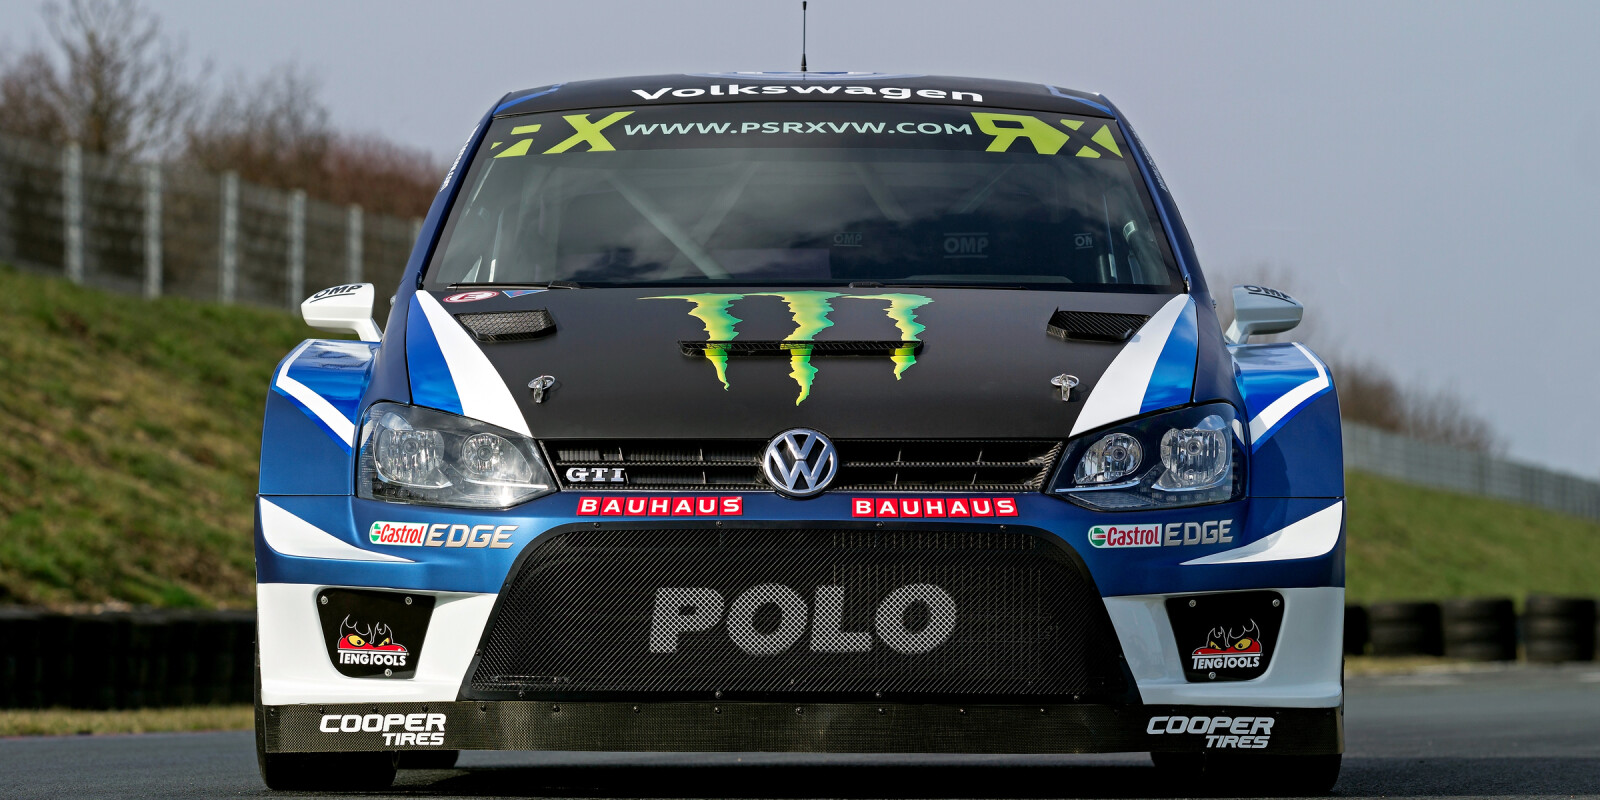 Launch images for the 2017 PSRX VW Polo GTI Supercar